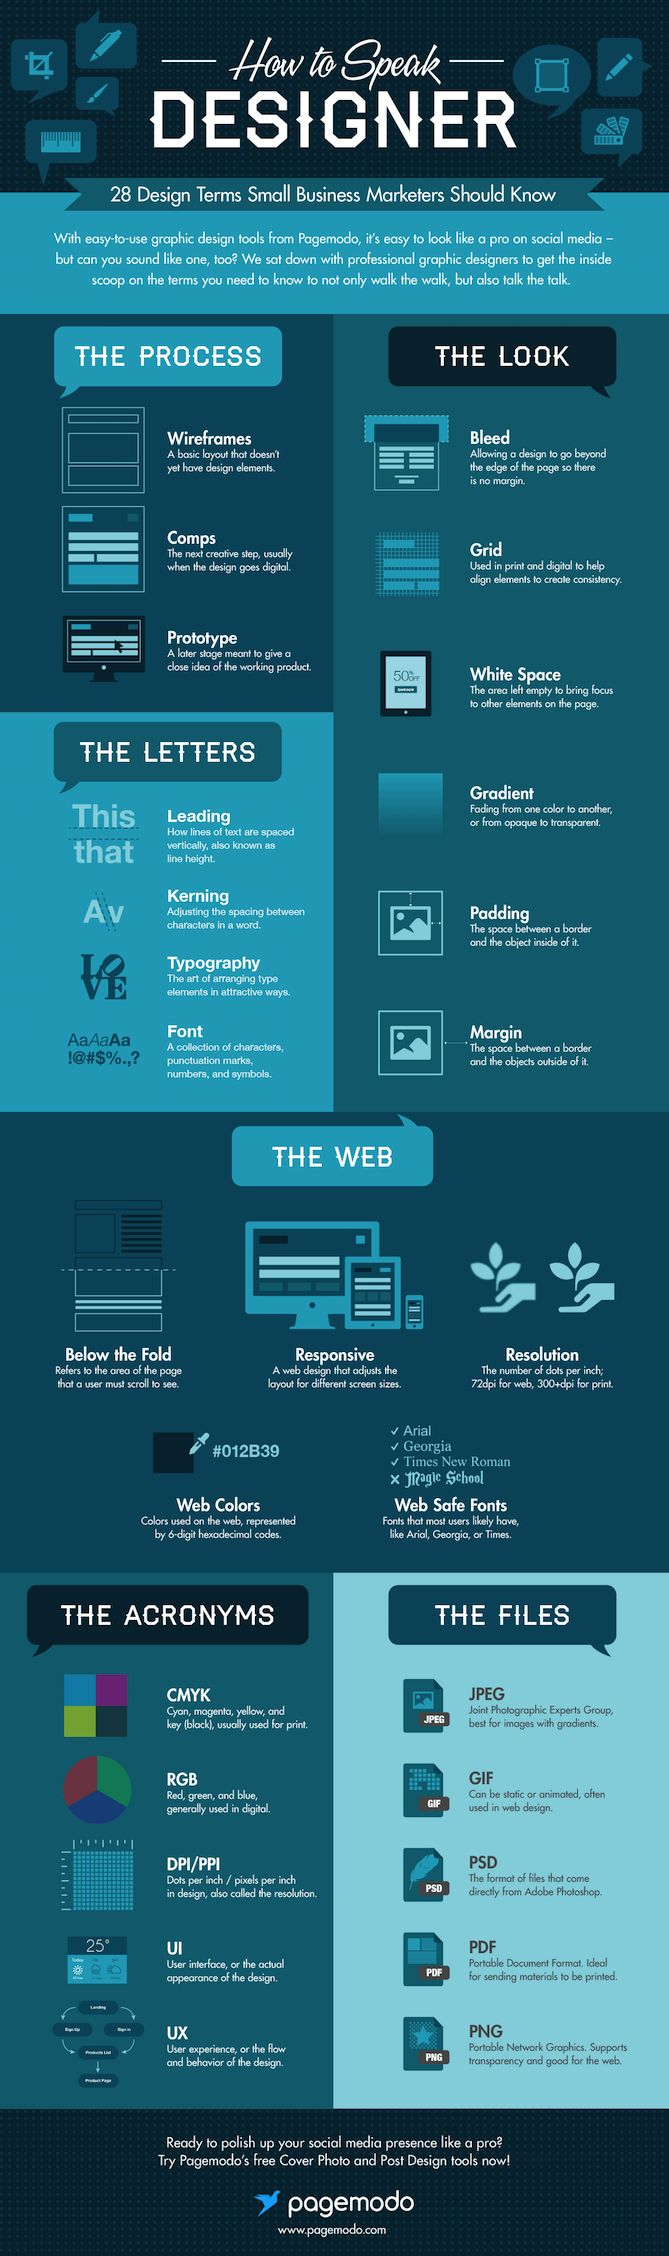 28 Graphic Design Terms Every Marketer Should Know [Infographic], via @HubSpot - very helpful for #socialmedia as well!